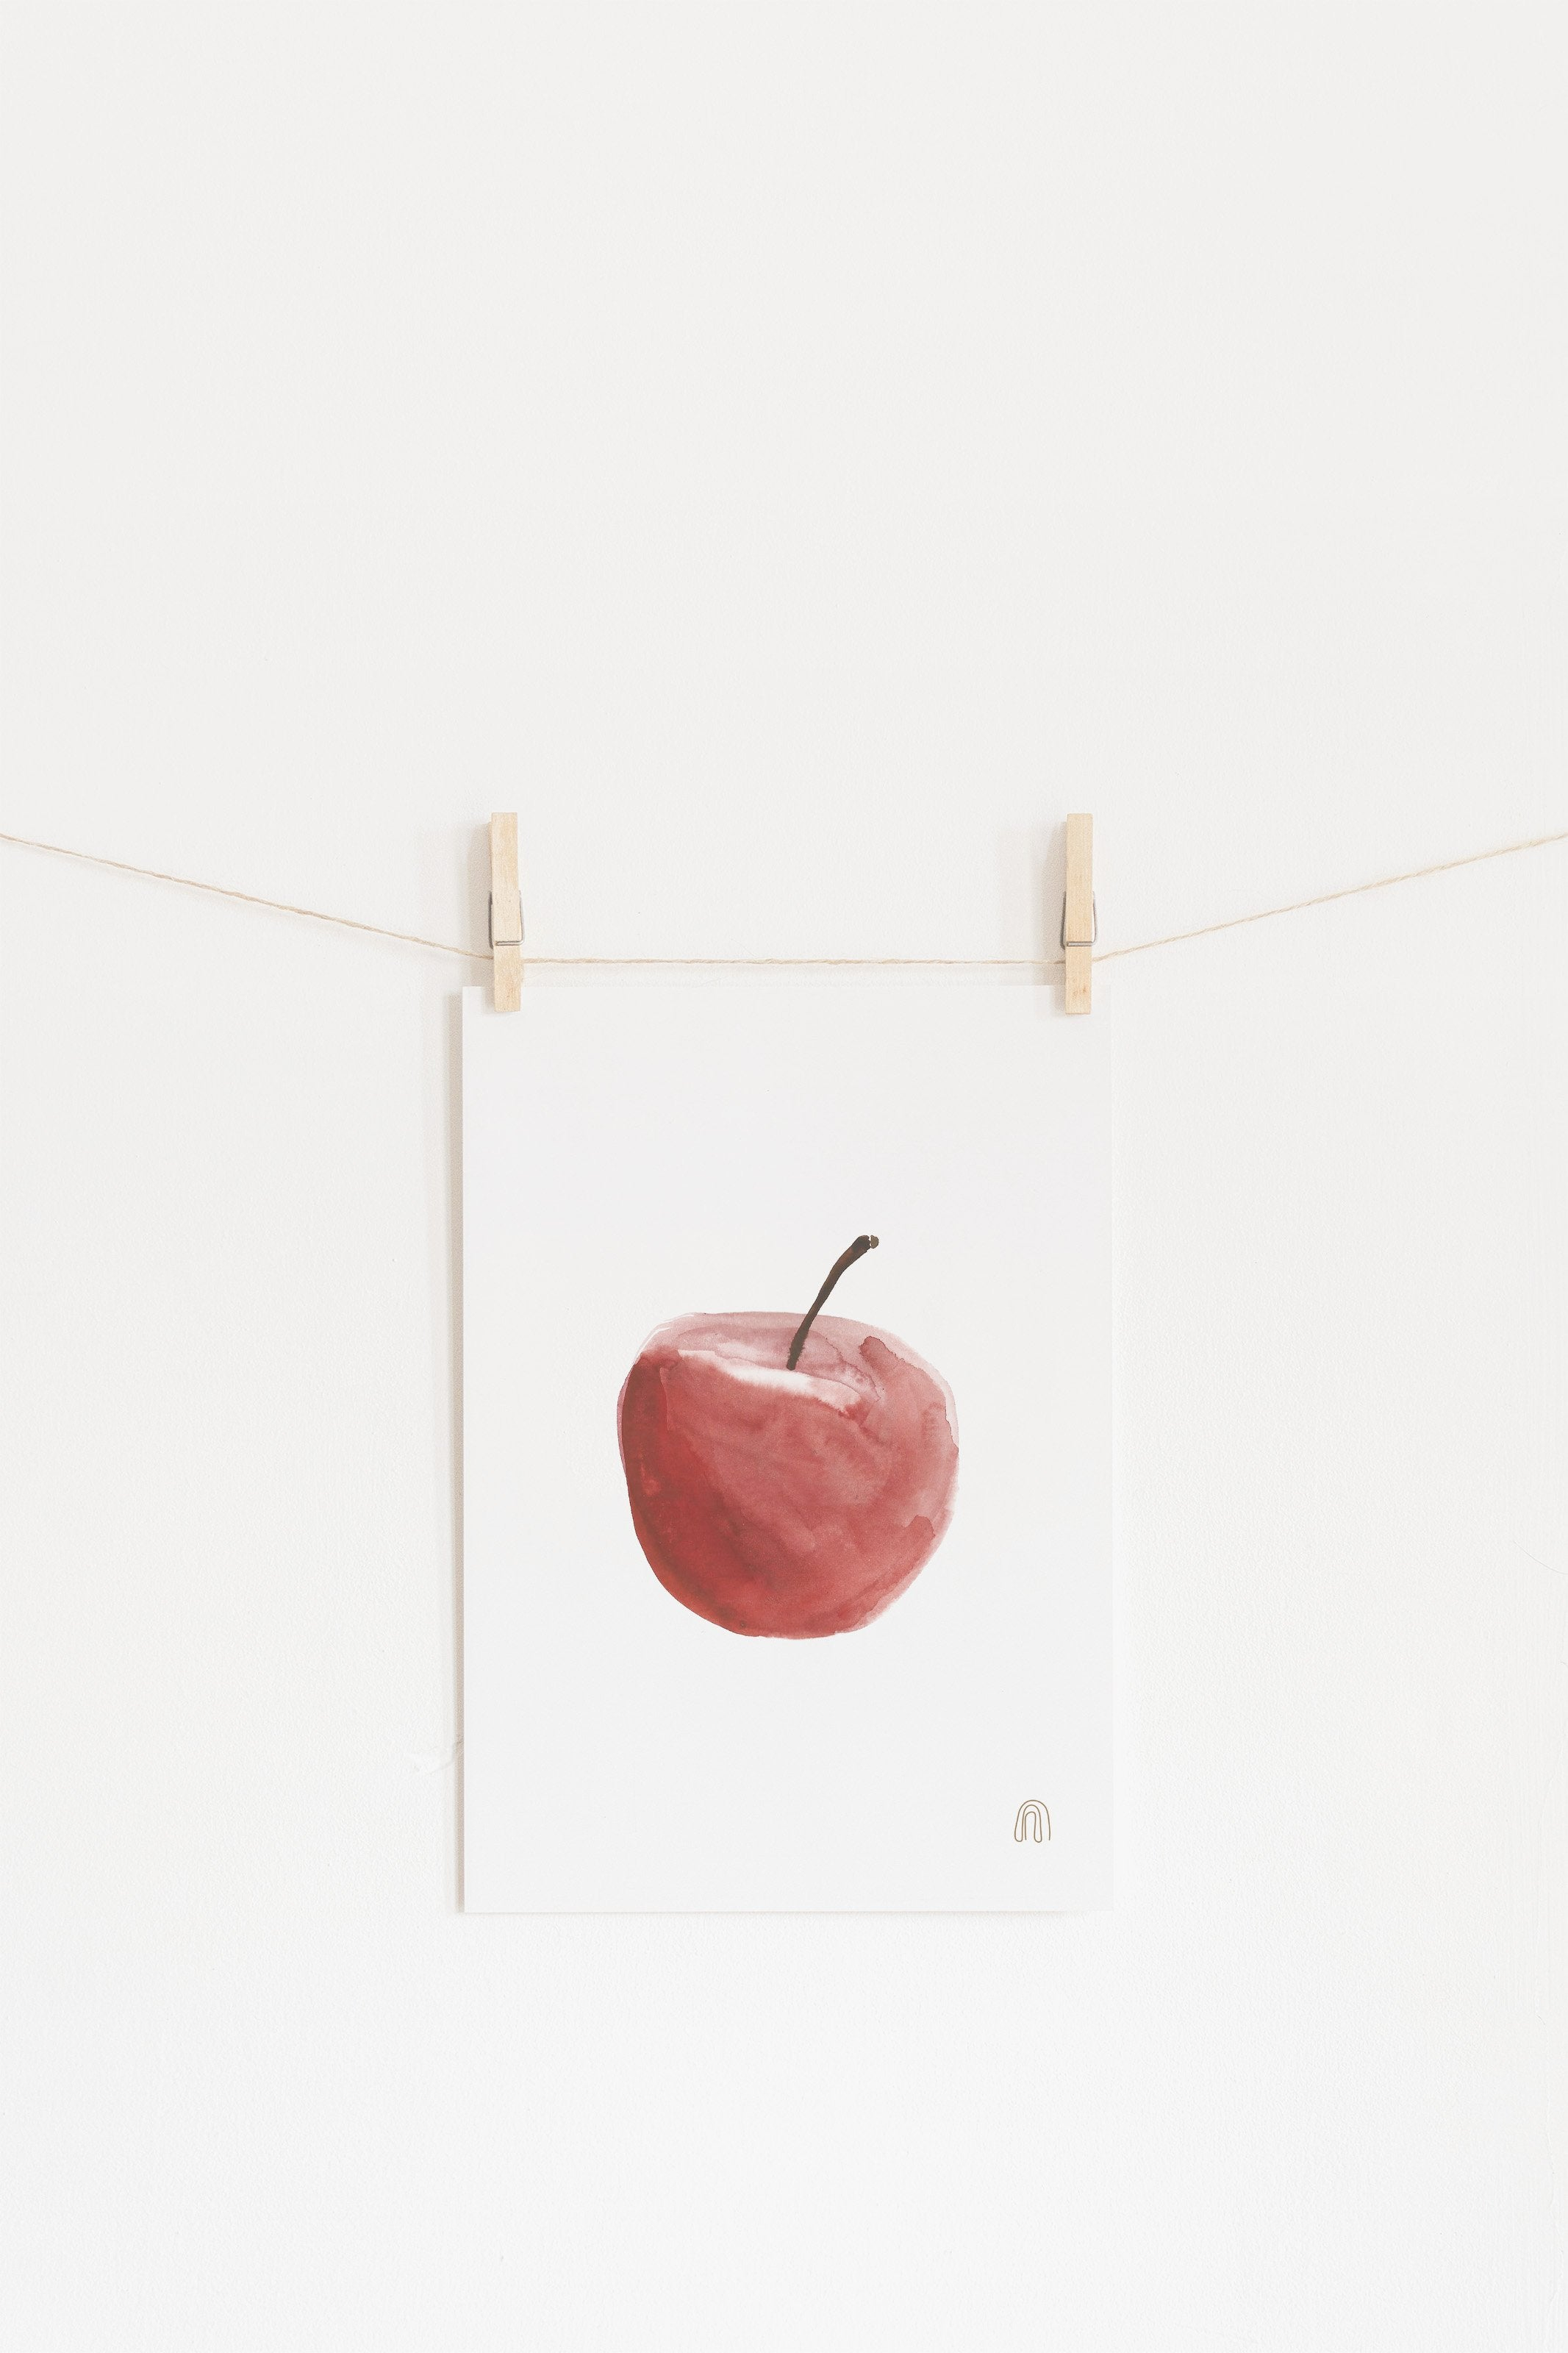 Apple Art poster 21 x 30 cm